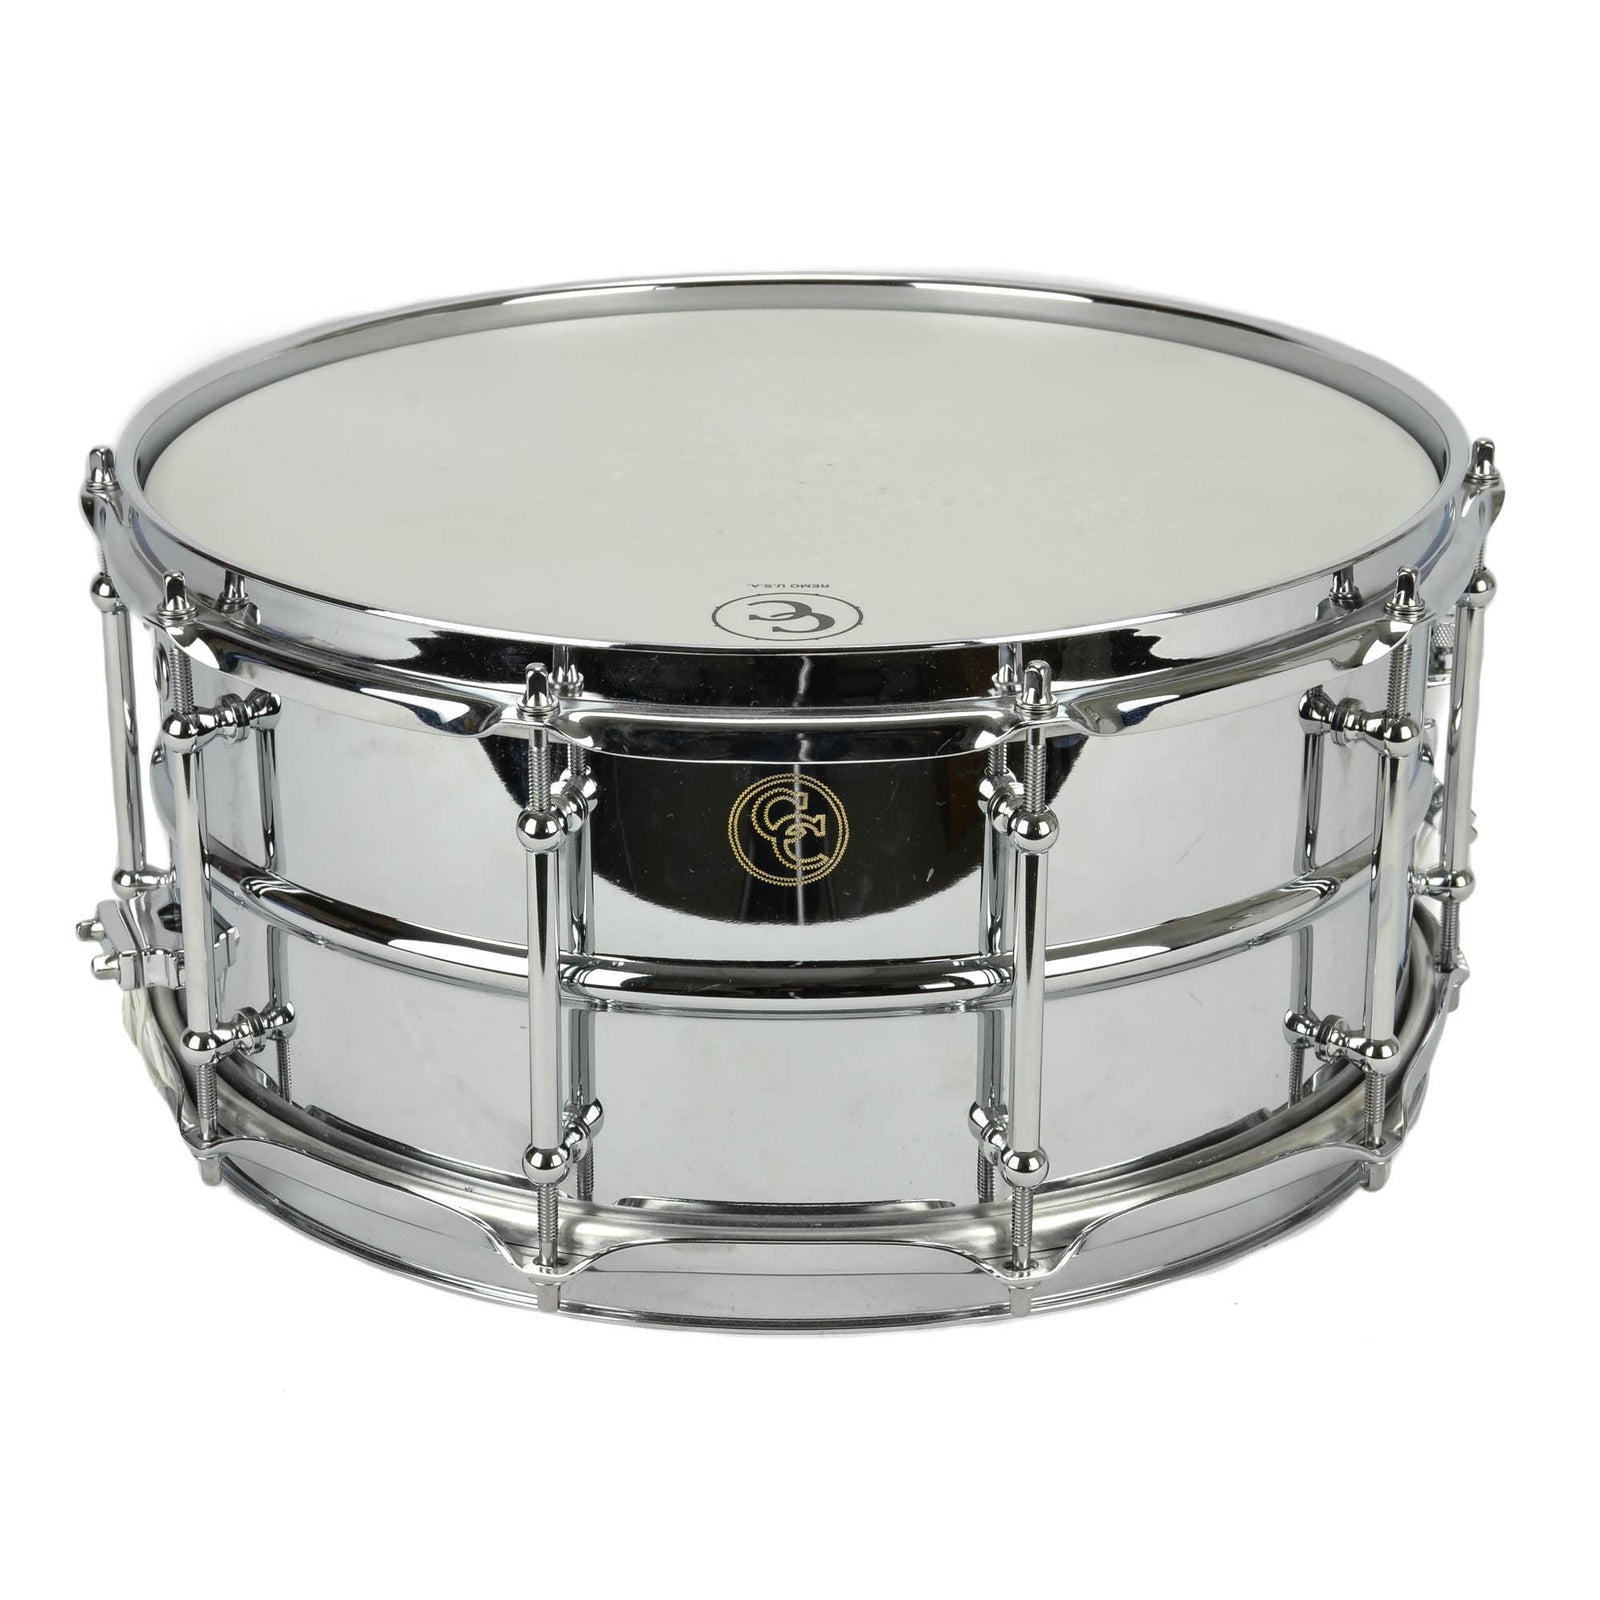 "C&C 6.5x14"" Chrome Over Brass Snare - Engraved"